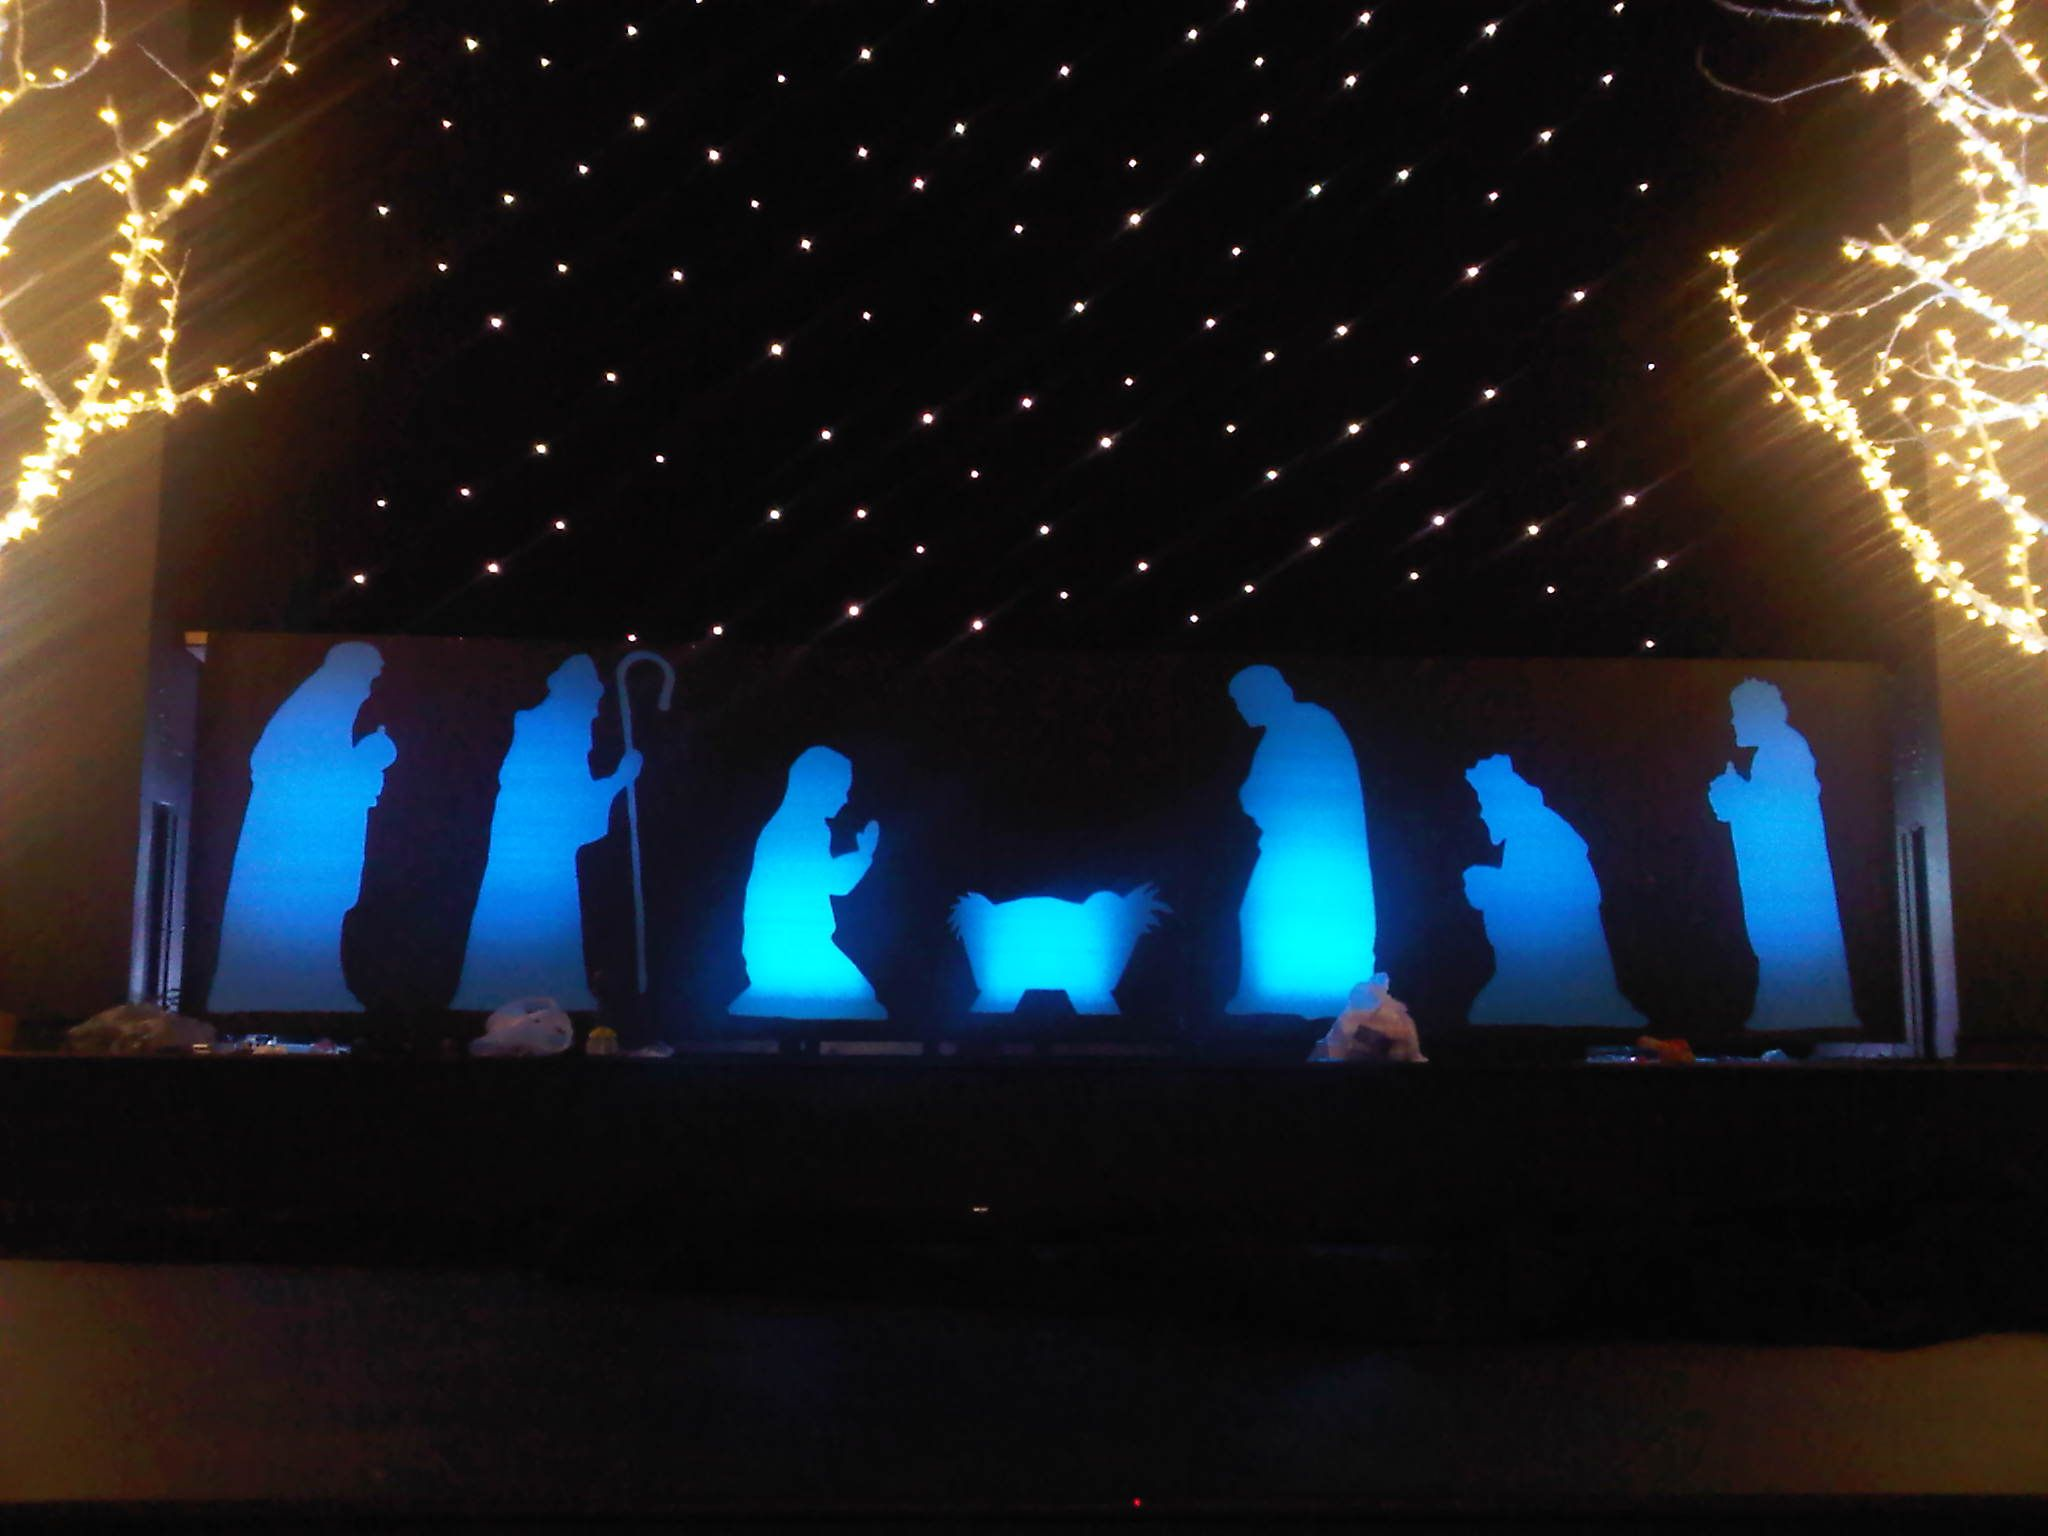 Christmas eve worship service ideas - Christmas Eve Stage Design By Ashima Samuel